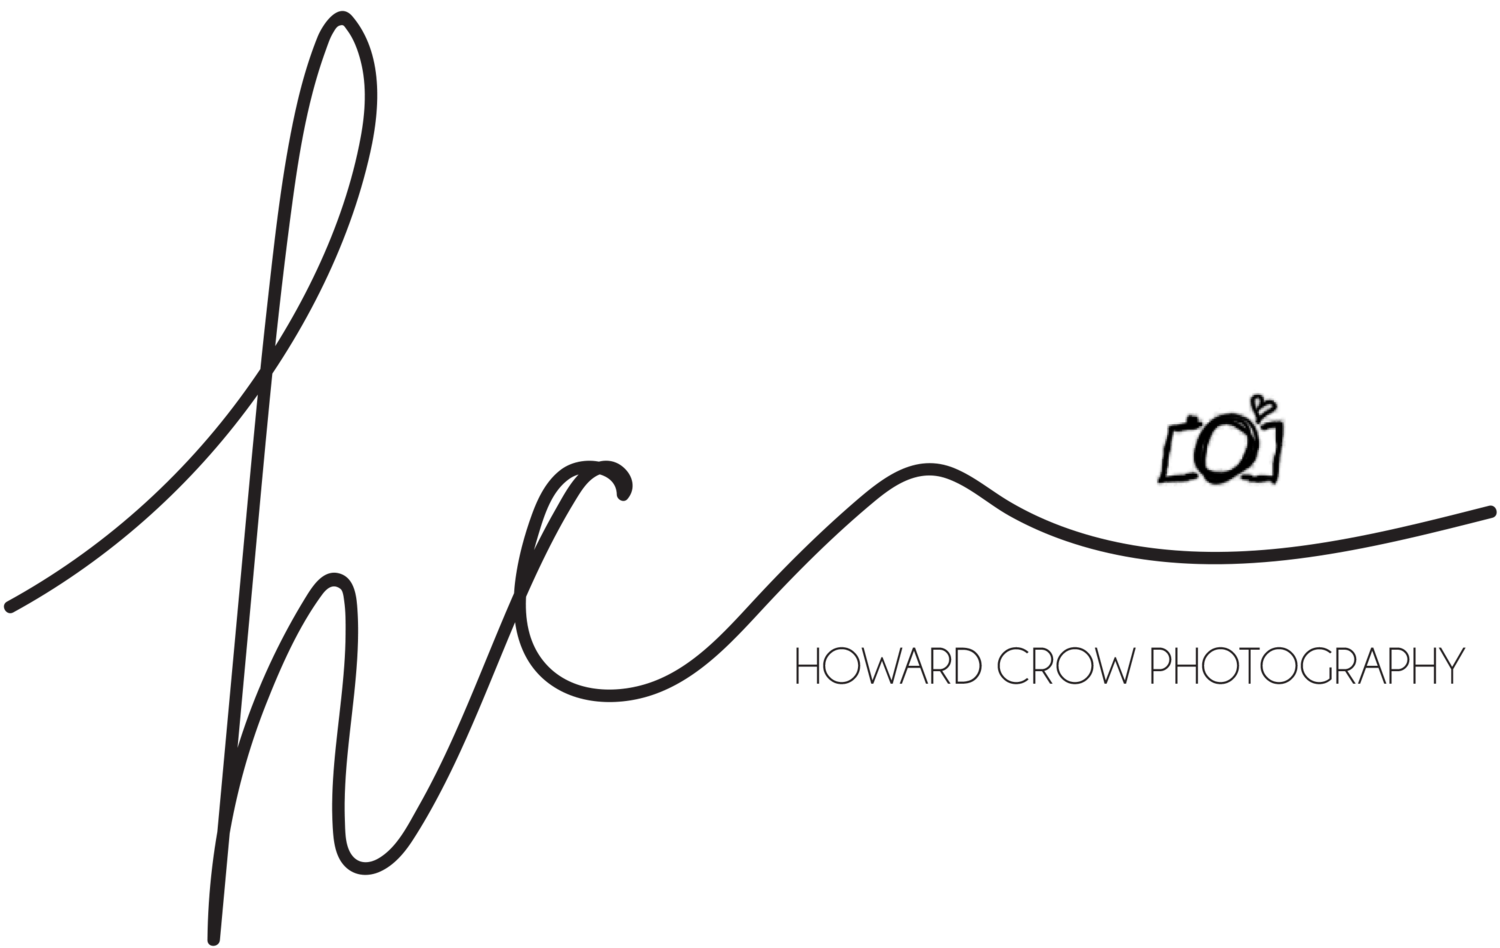 Howard-Crow Photography